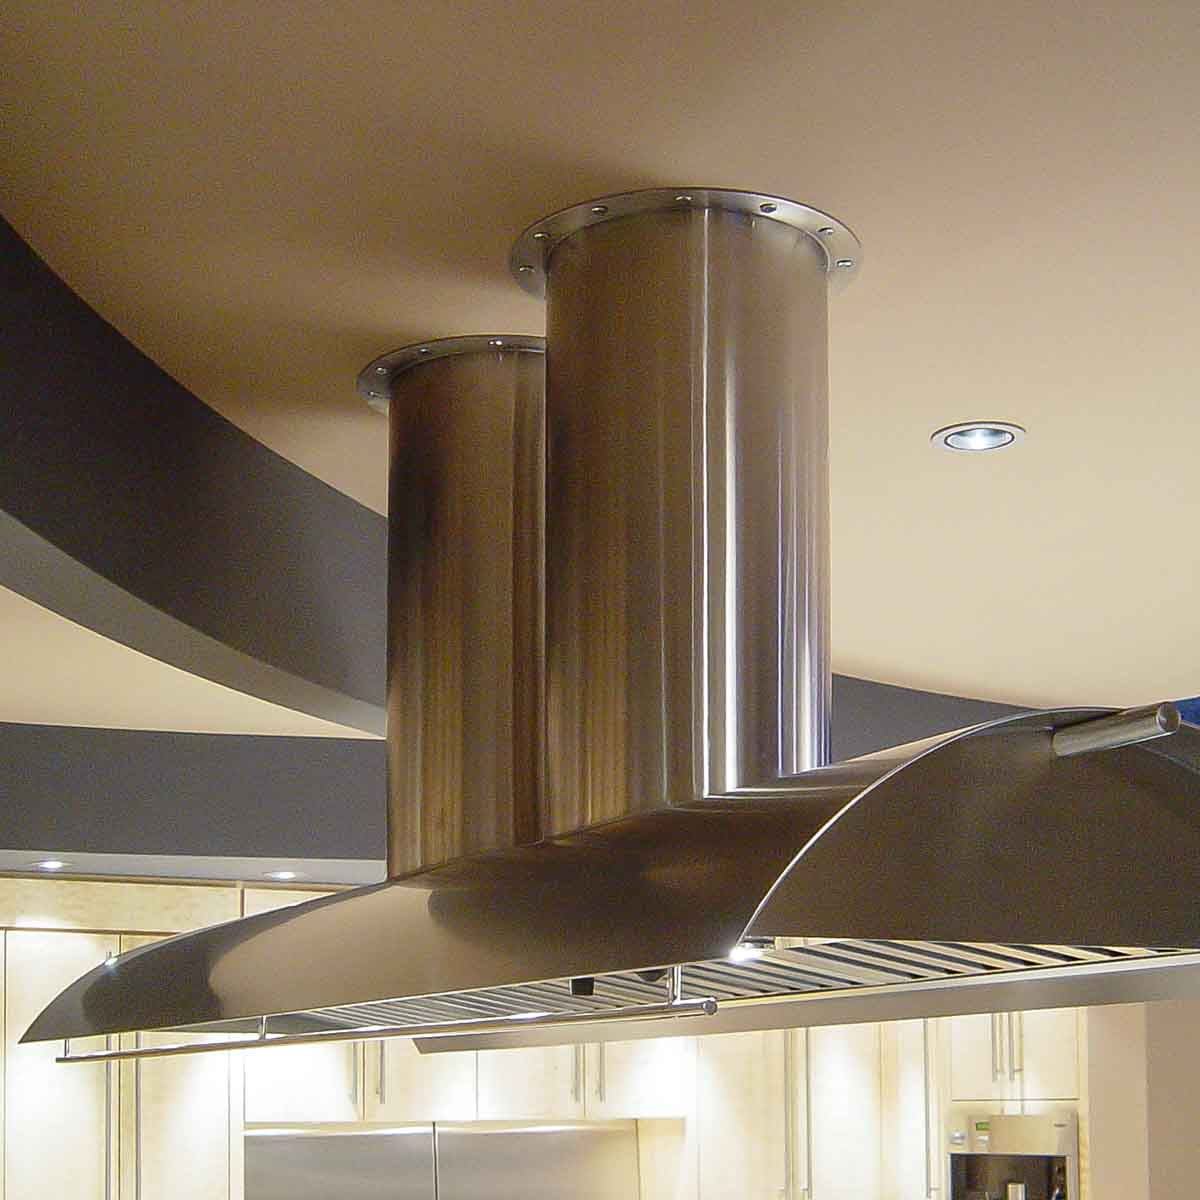 Vent Hood Prior to Retrofit